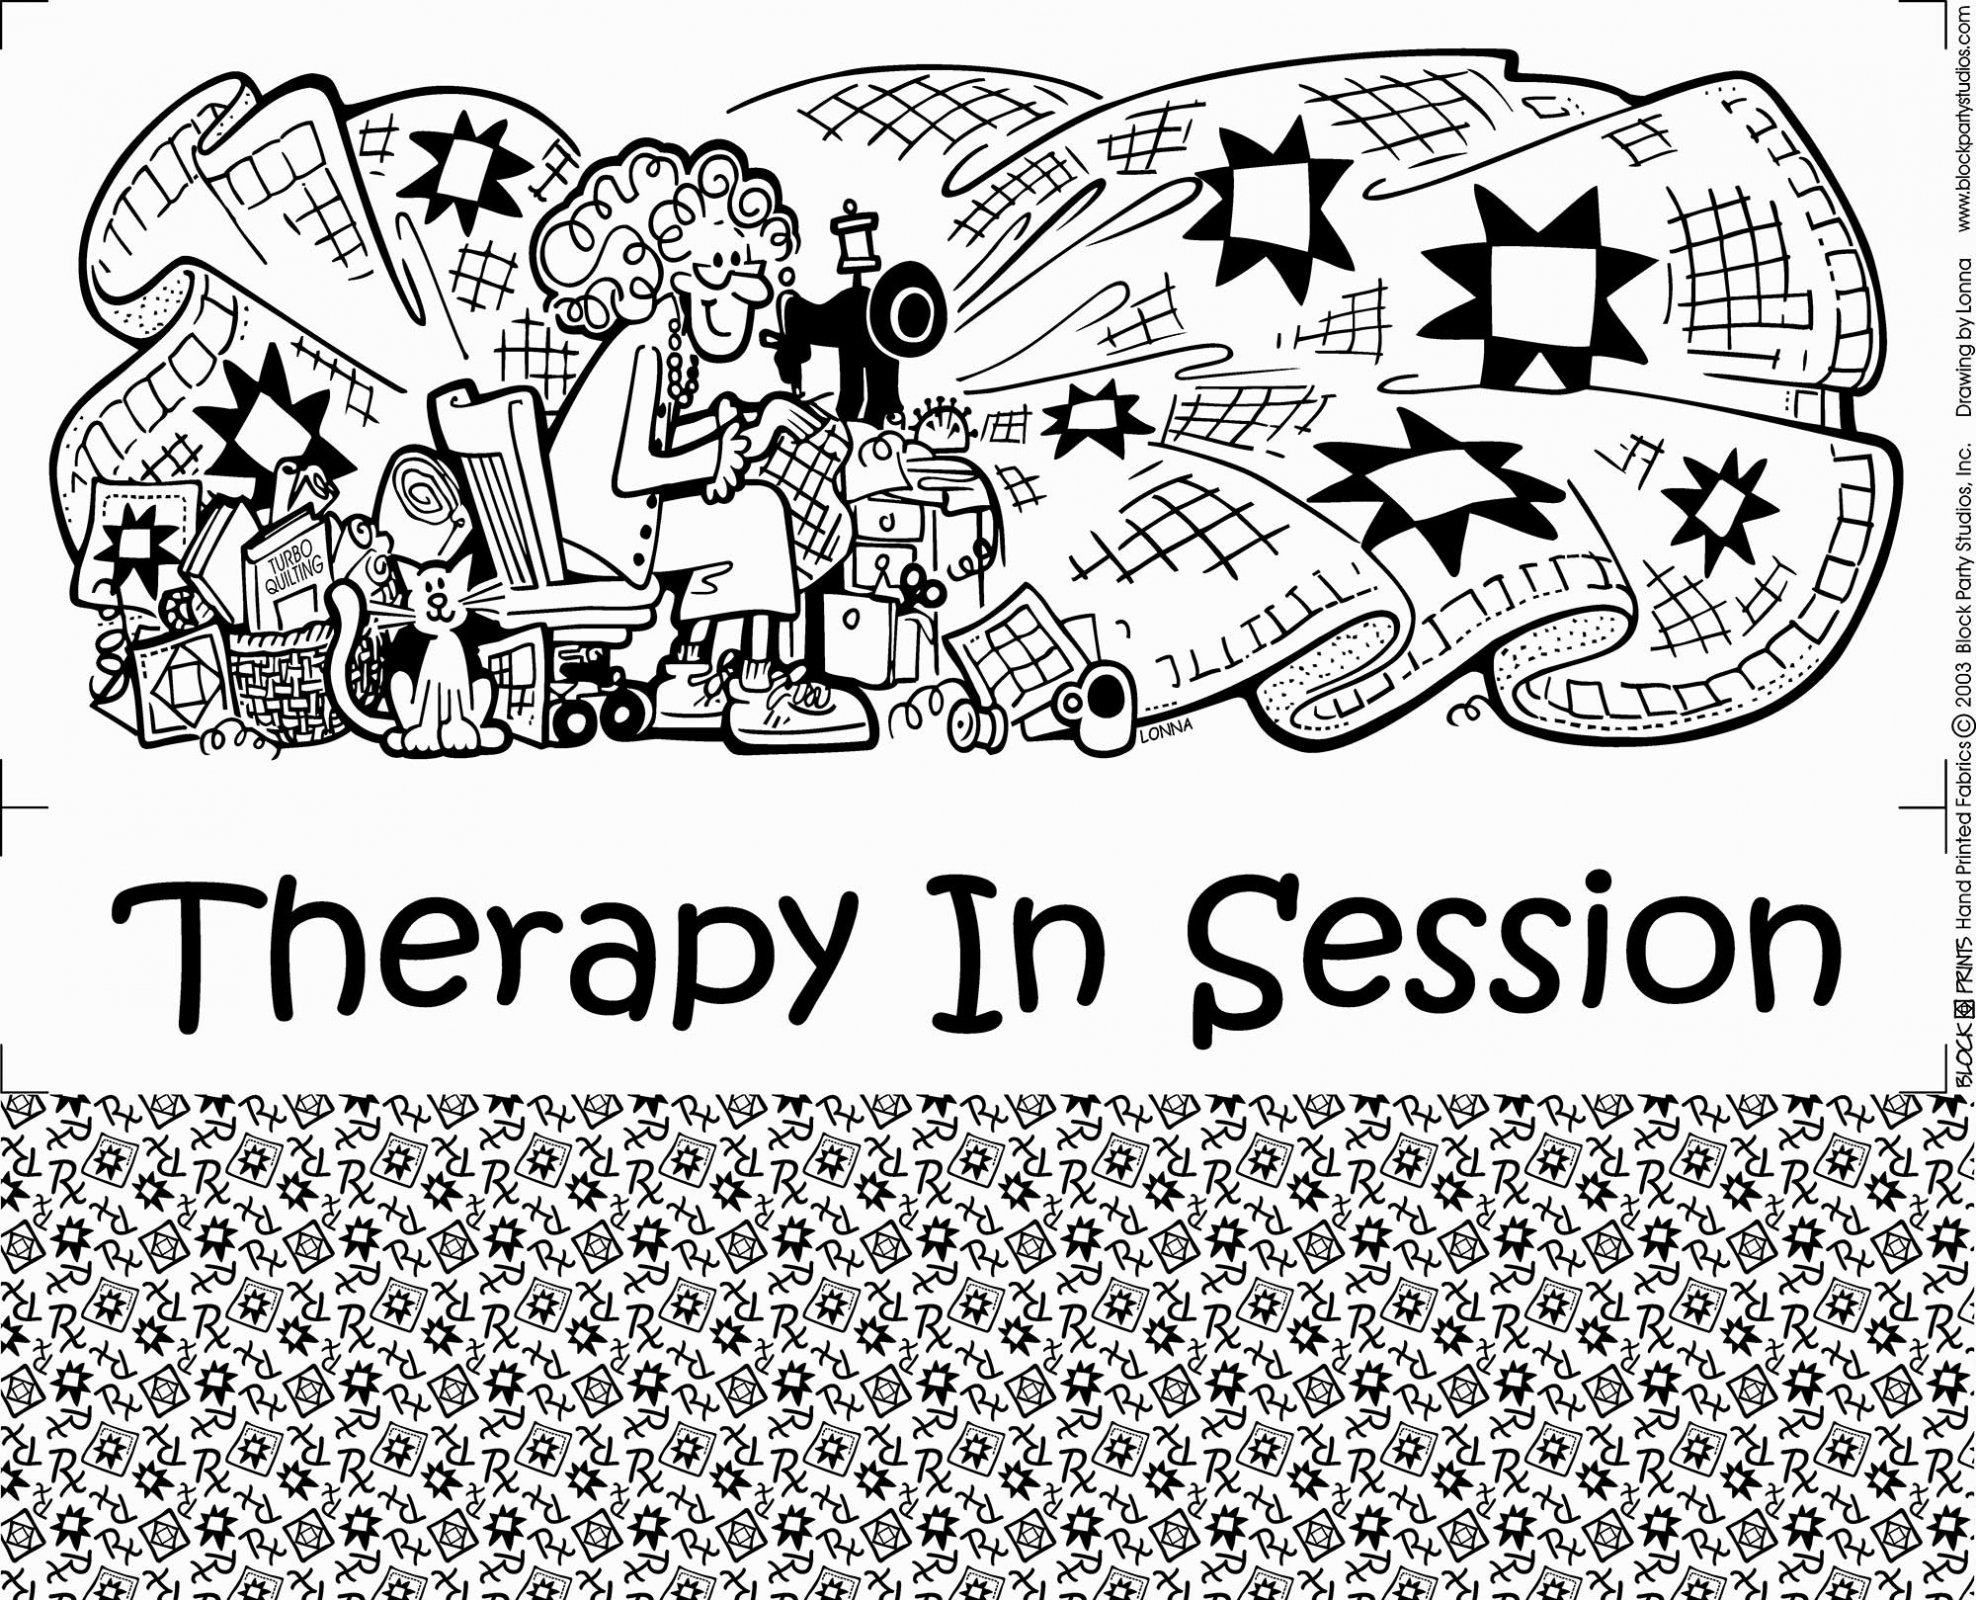 Therapy in Session Quilt Fabric Panel